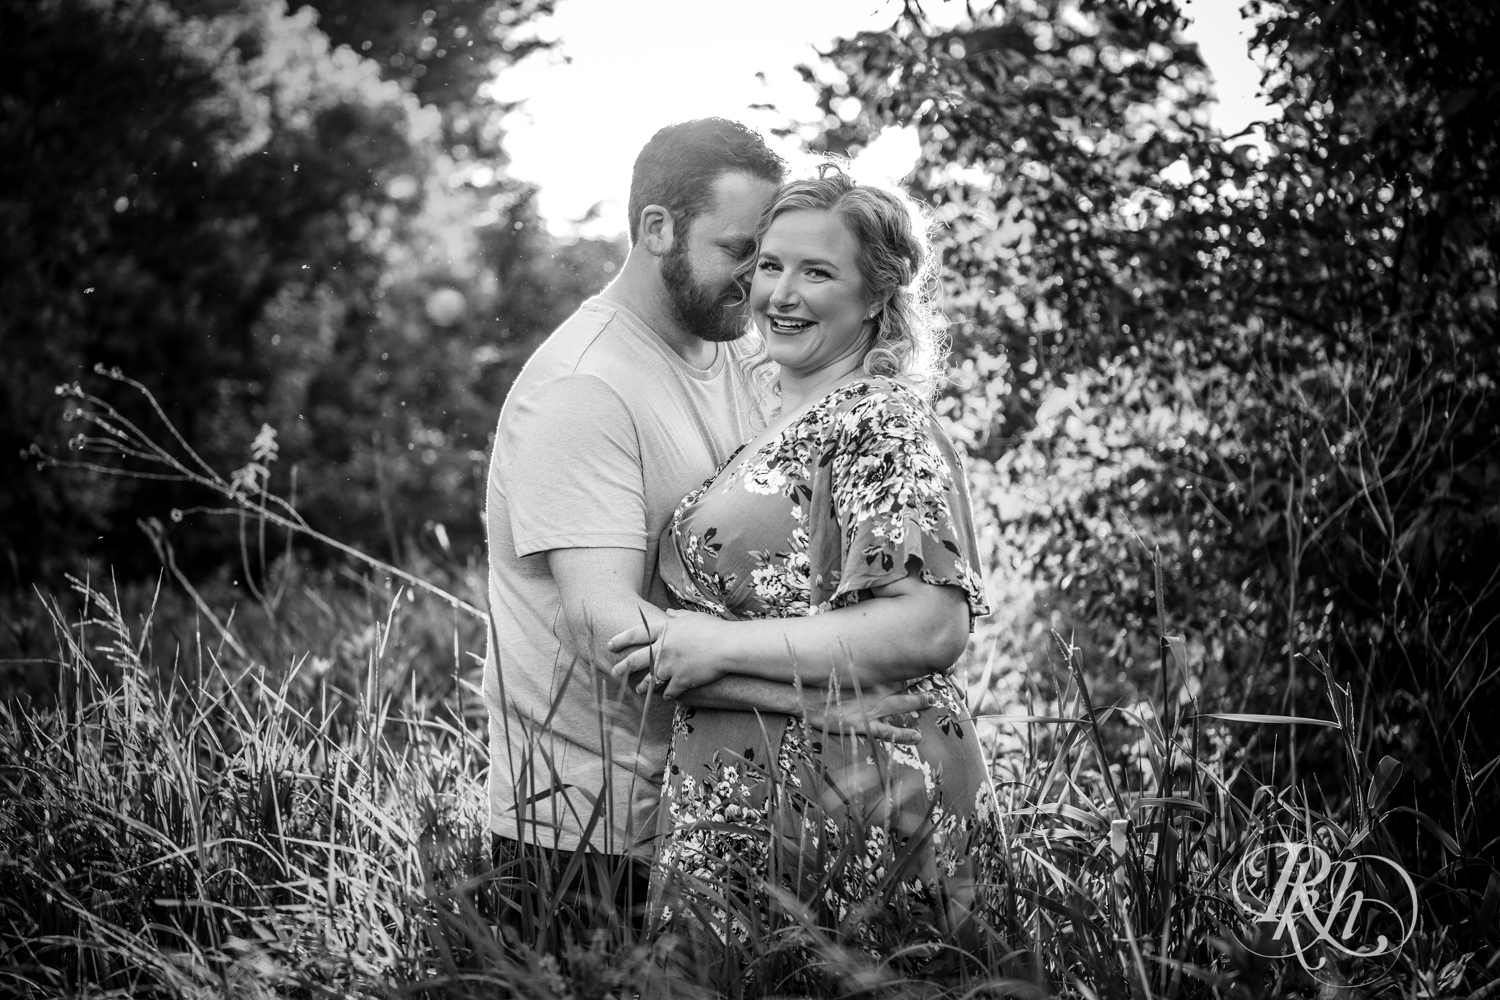 Constance & Josh - Minnesota Engagement Photography - Lebanon Hills Regional Park - RKH Images - Blog (14 of 18).jpg